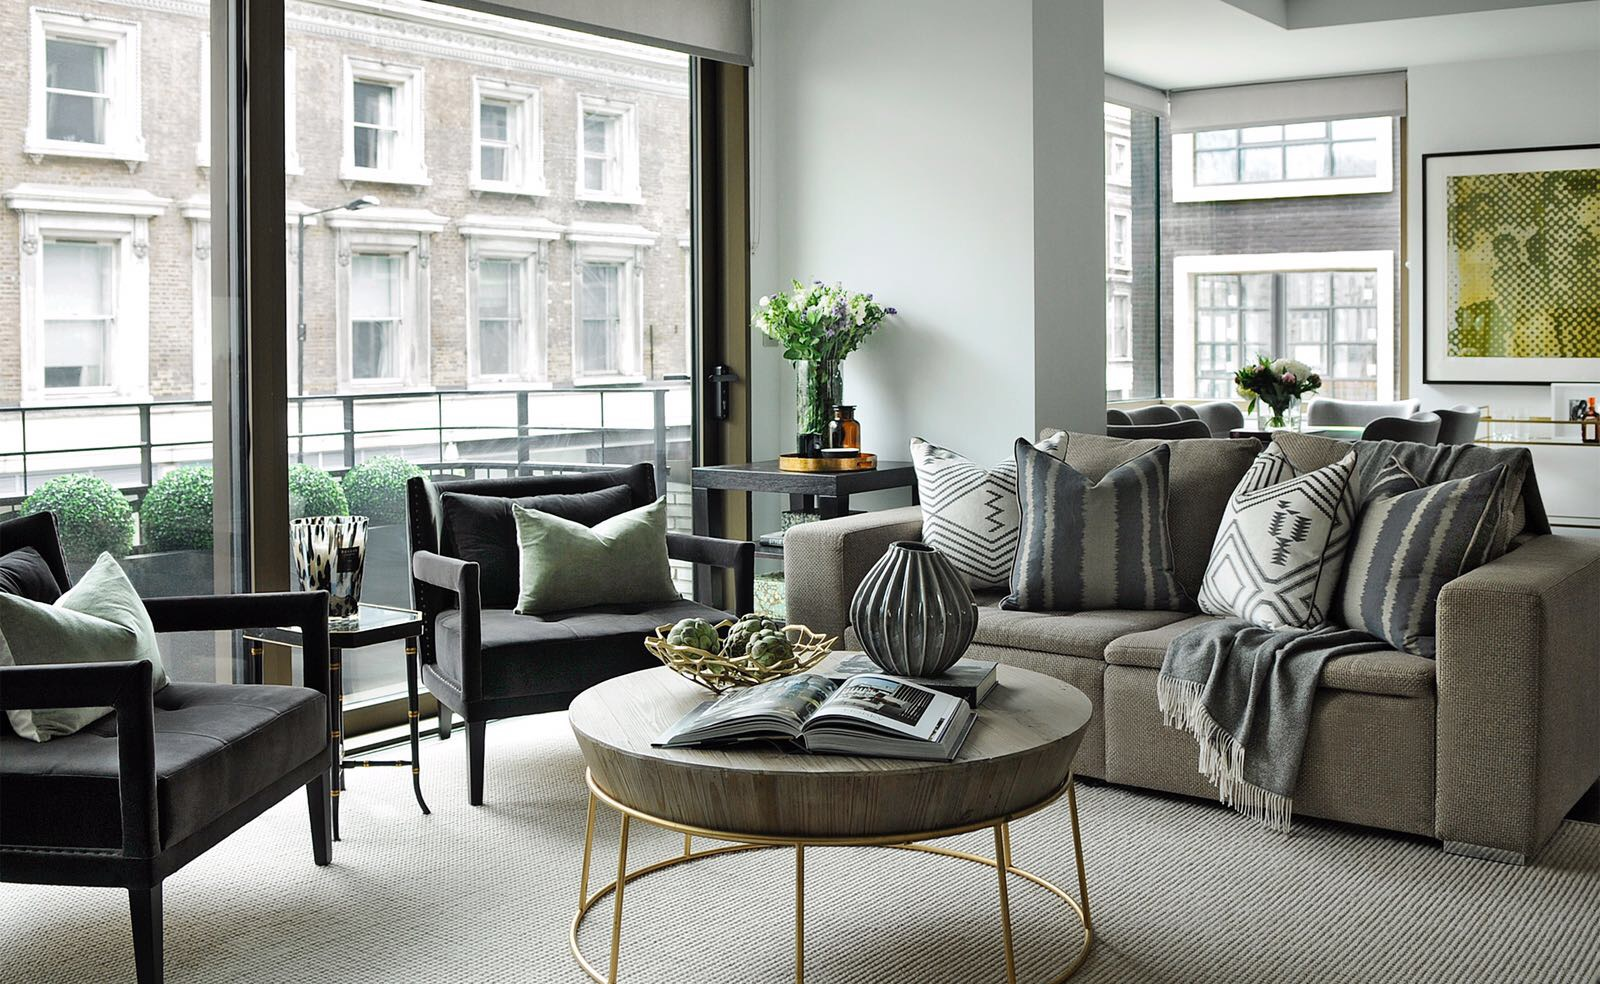 </p> <p>Find your ideal home design pro on designfor-me.com - get matched and see who's interested in your home project. Click image to see more inspiration from our design pros</p> <p>Design by Laxmi, interior designer from Westminster, London</p> <p> #interiordesign #interiors #homedecor #homeinspiration #luxuryarchitecture #luxurydecor #luxurydesign #livingrooms #livingroomdesign #livingroominspiration #livingroomideas </p> <p>